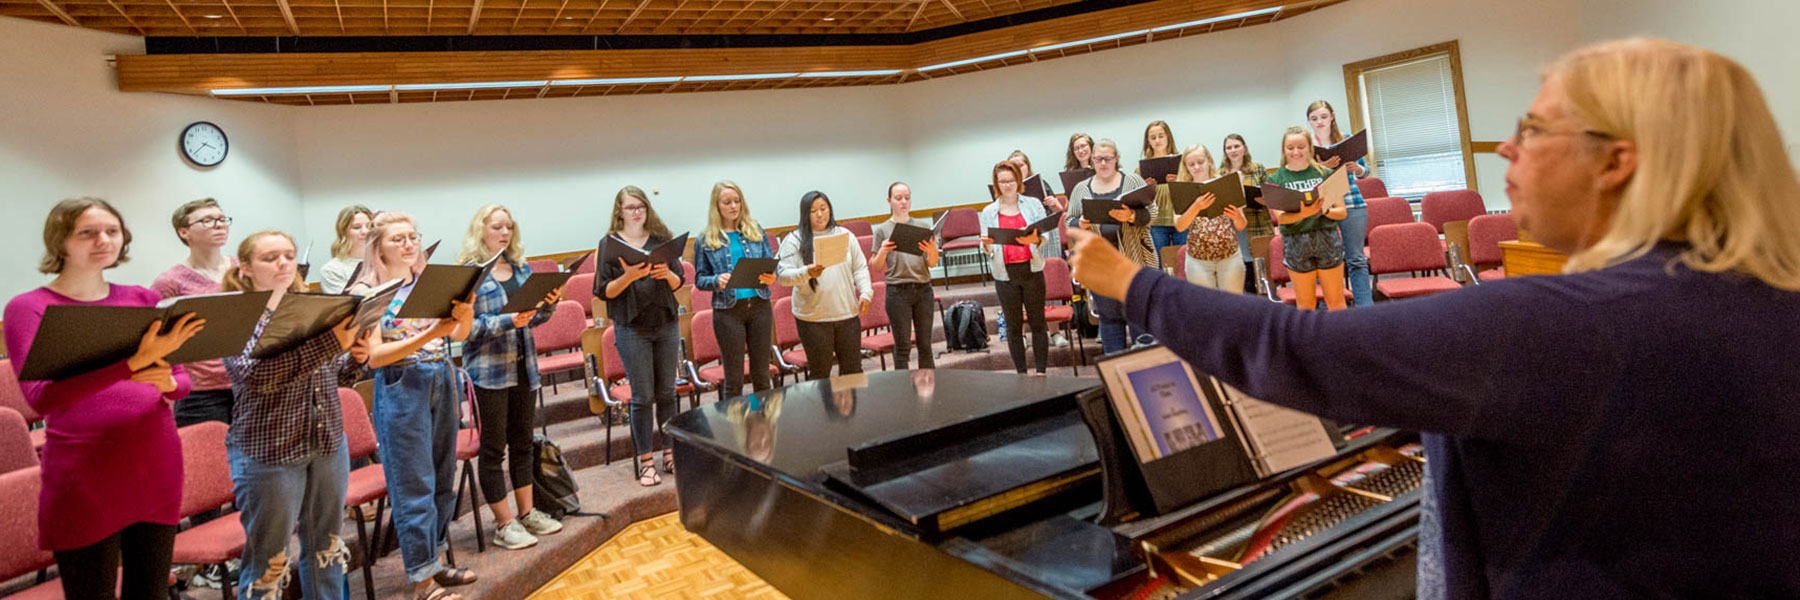 a room full of female singers look at their director as she conducts them in a choir rehearsal